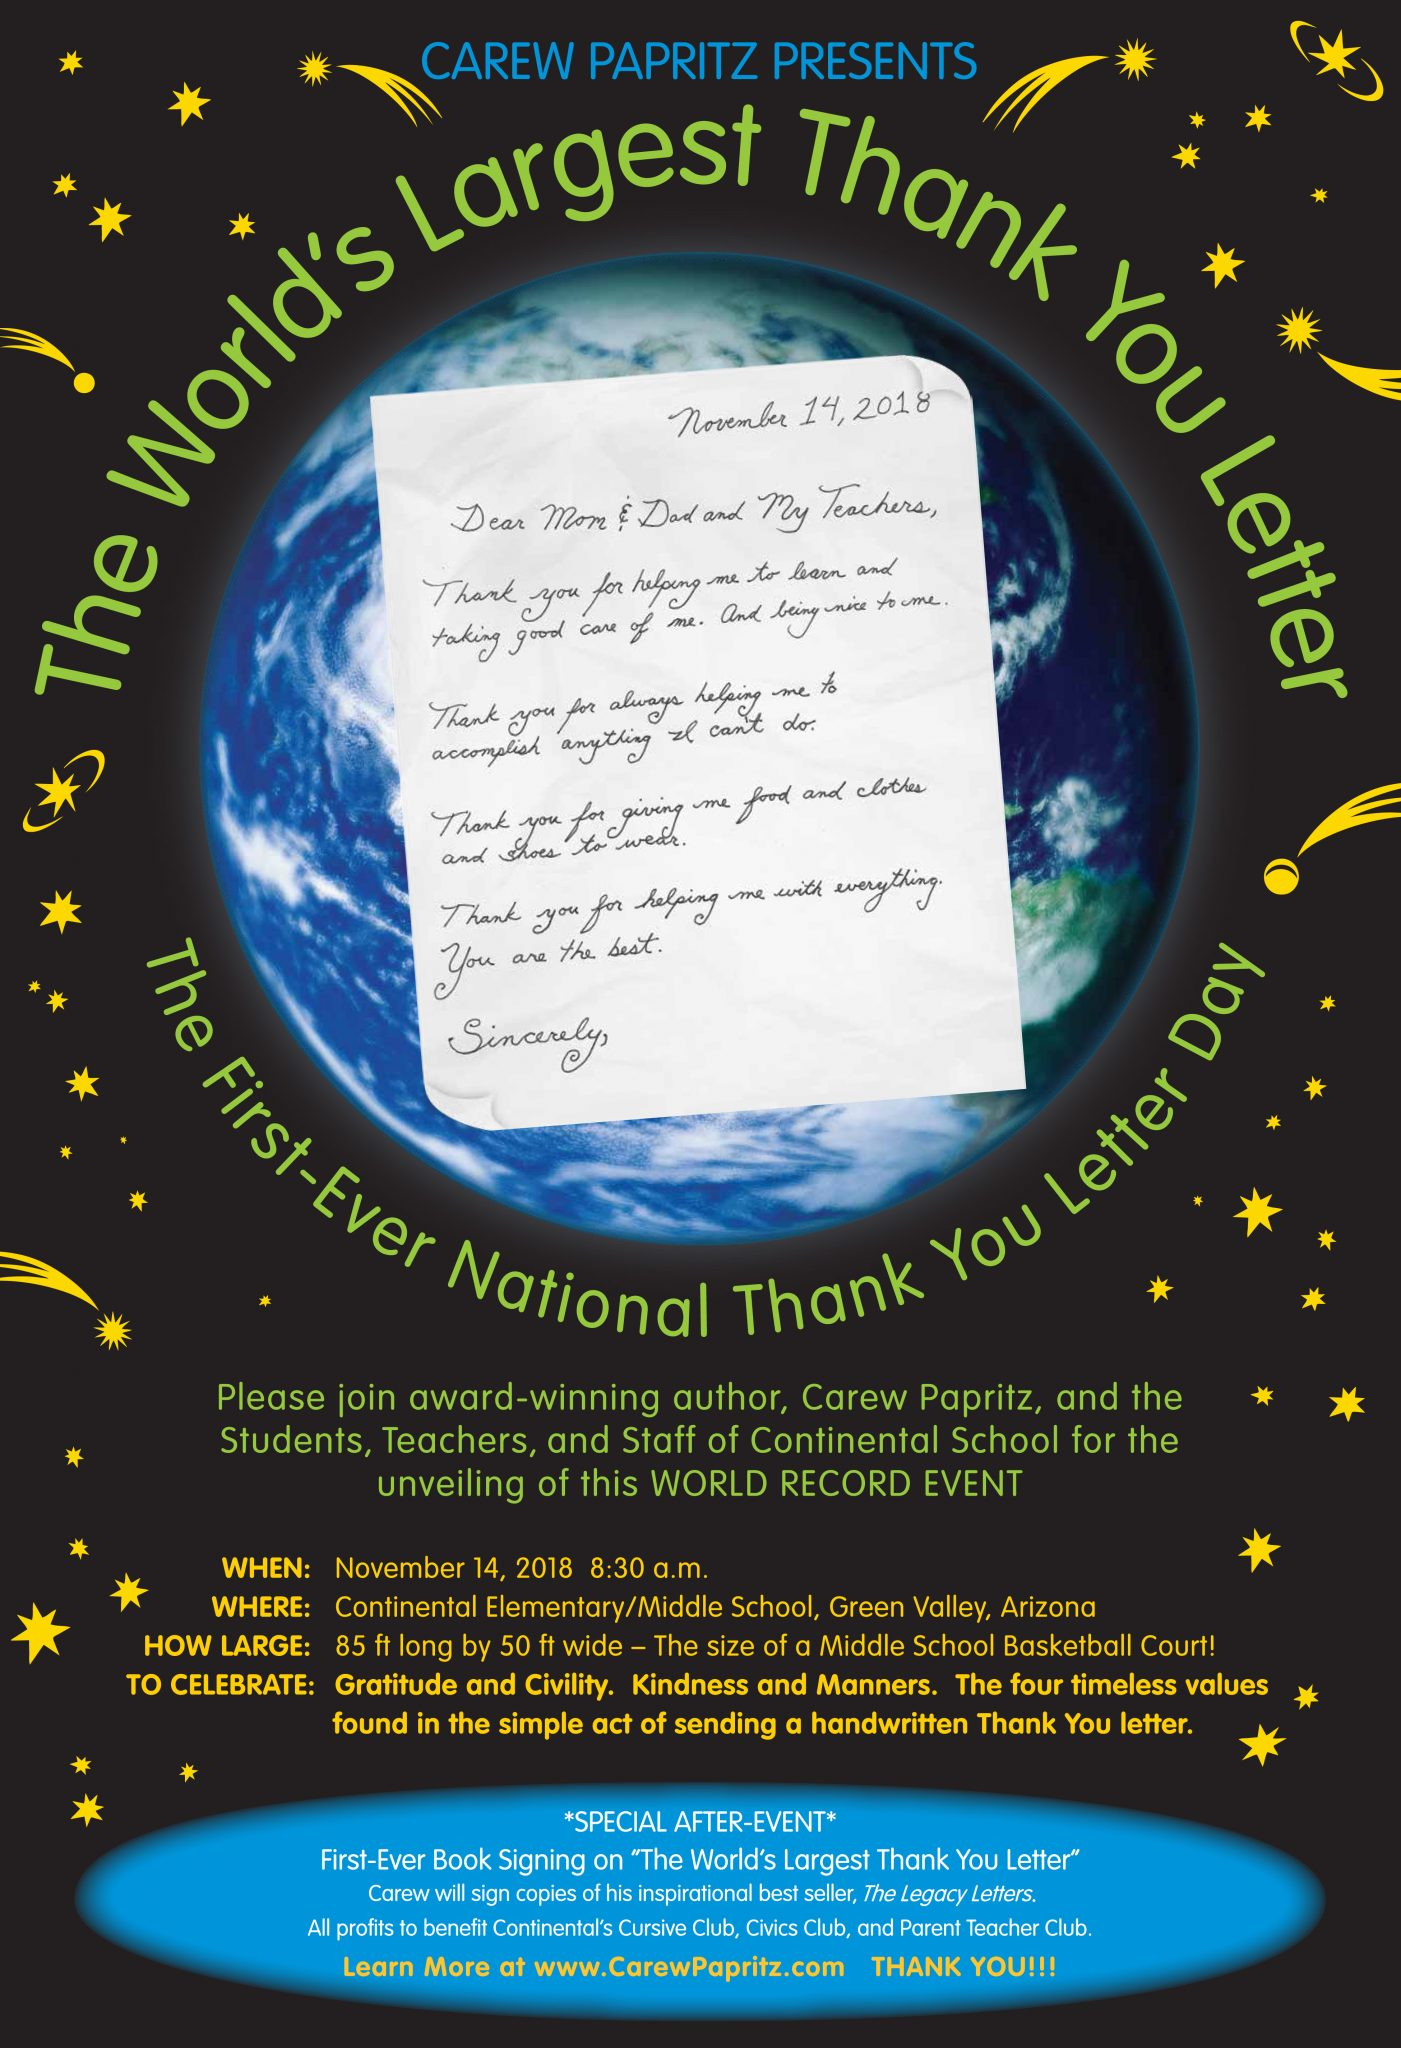 World's Largest Thank You Letter - The Legacy Letters by